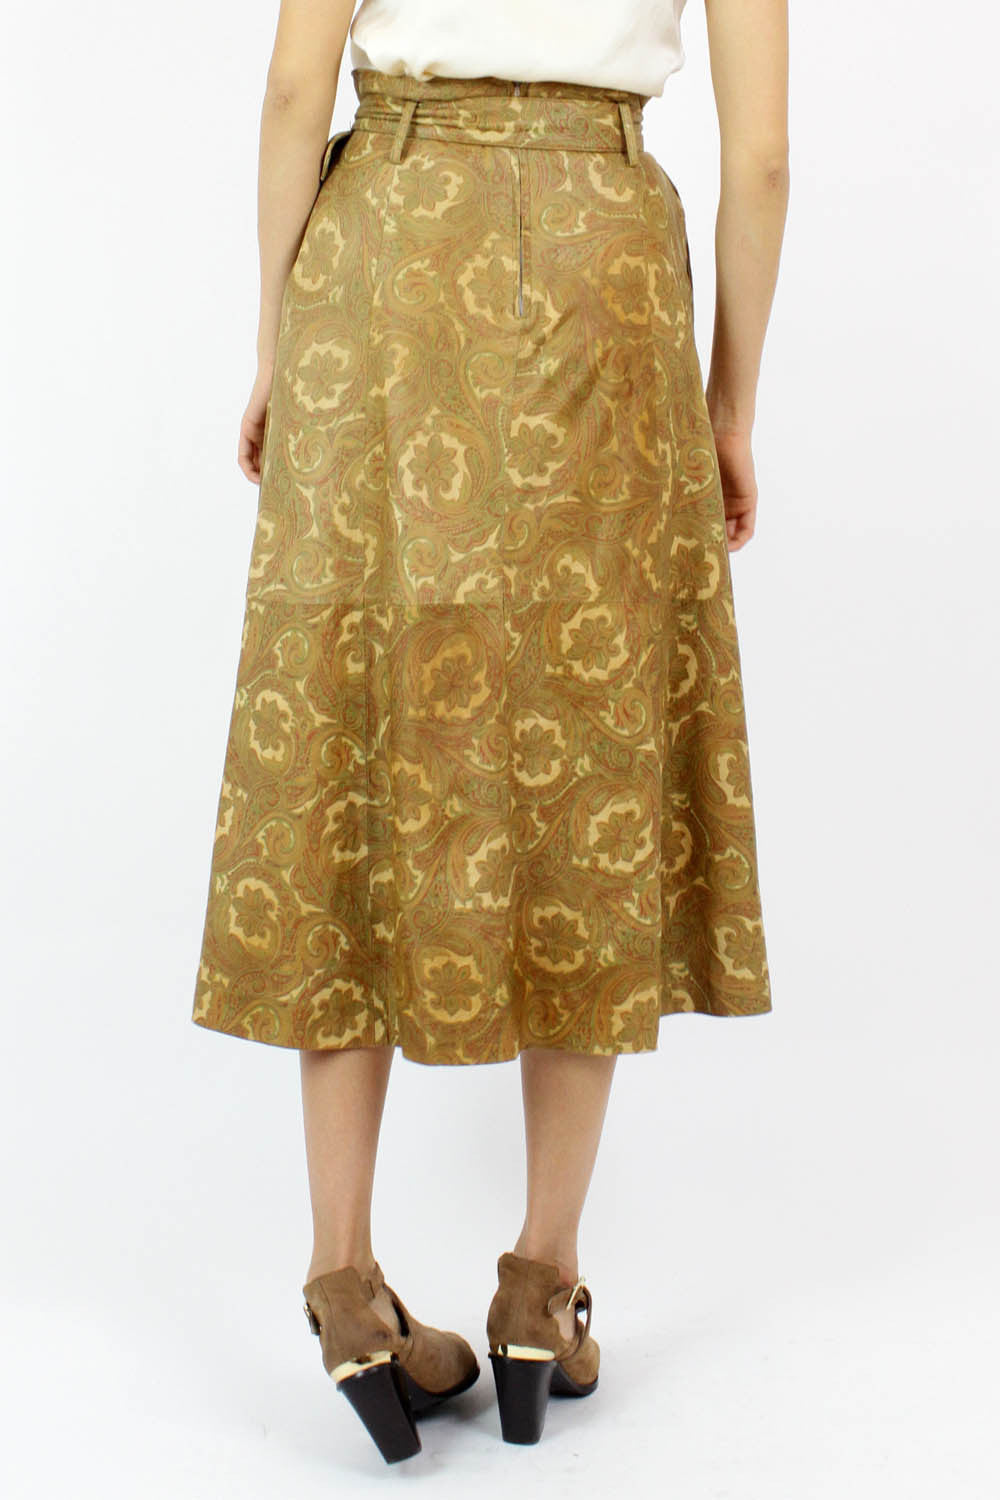 Paisley Leather Midi Skirt S/M